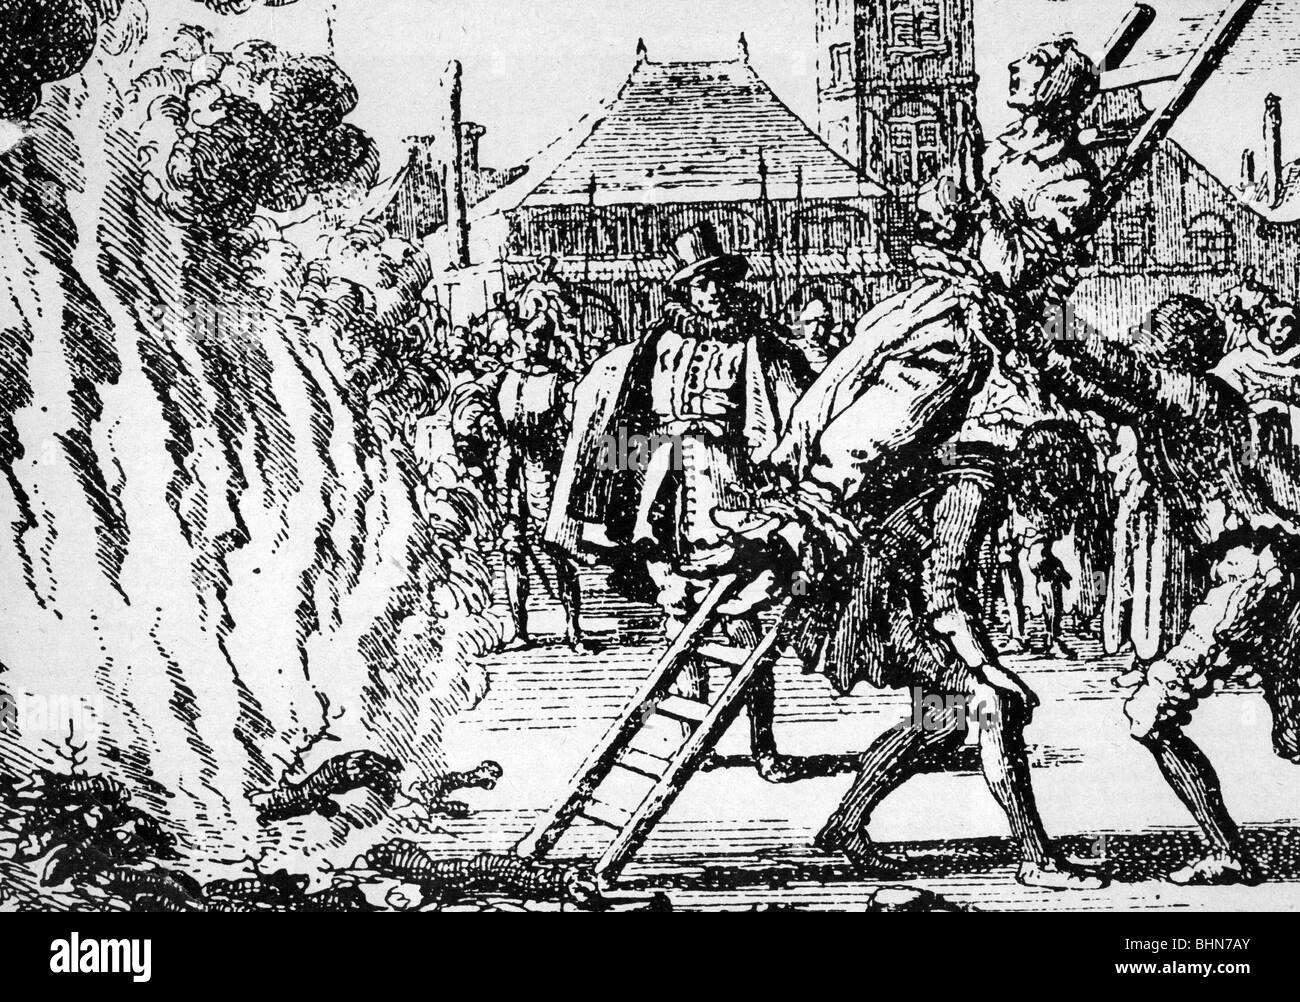 salem witch trials 17th century essay Need writing salem witch trials essay early in the time of salem, in the beginning of the 17th century, with the new british immigrants.